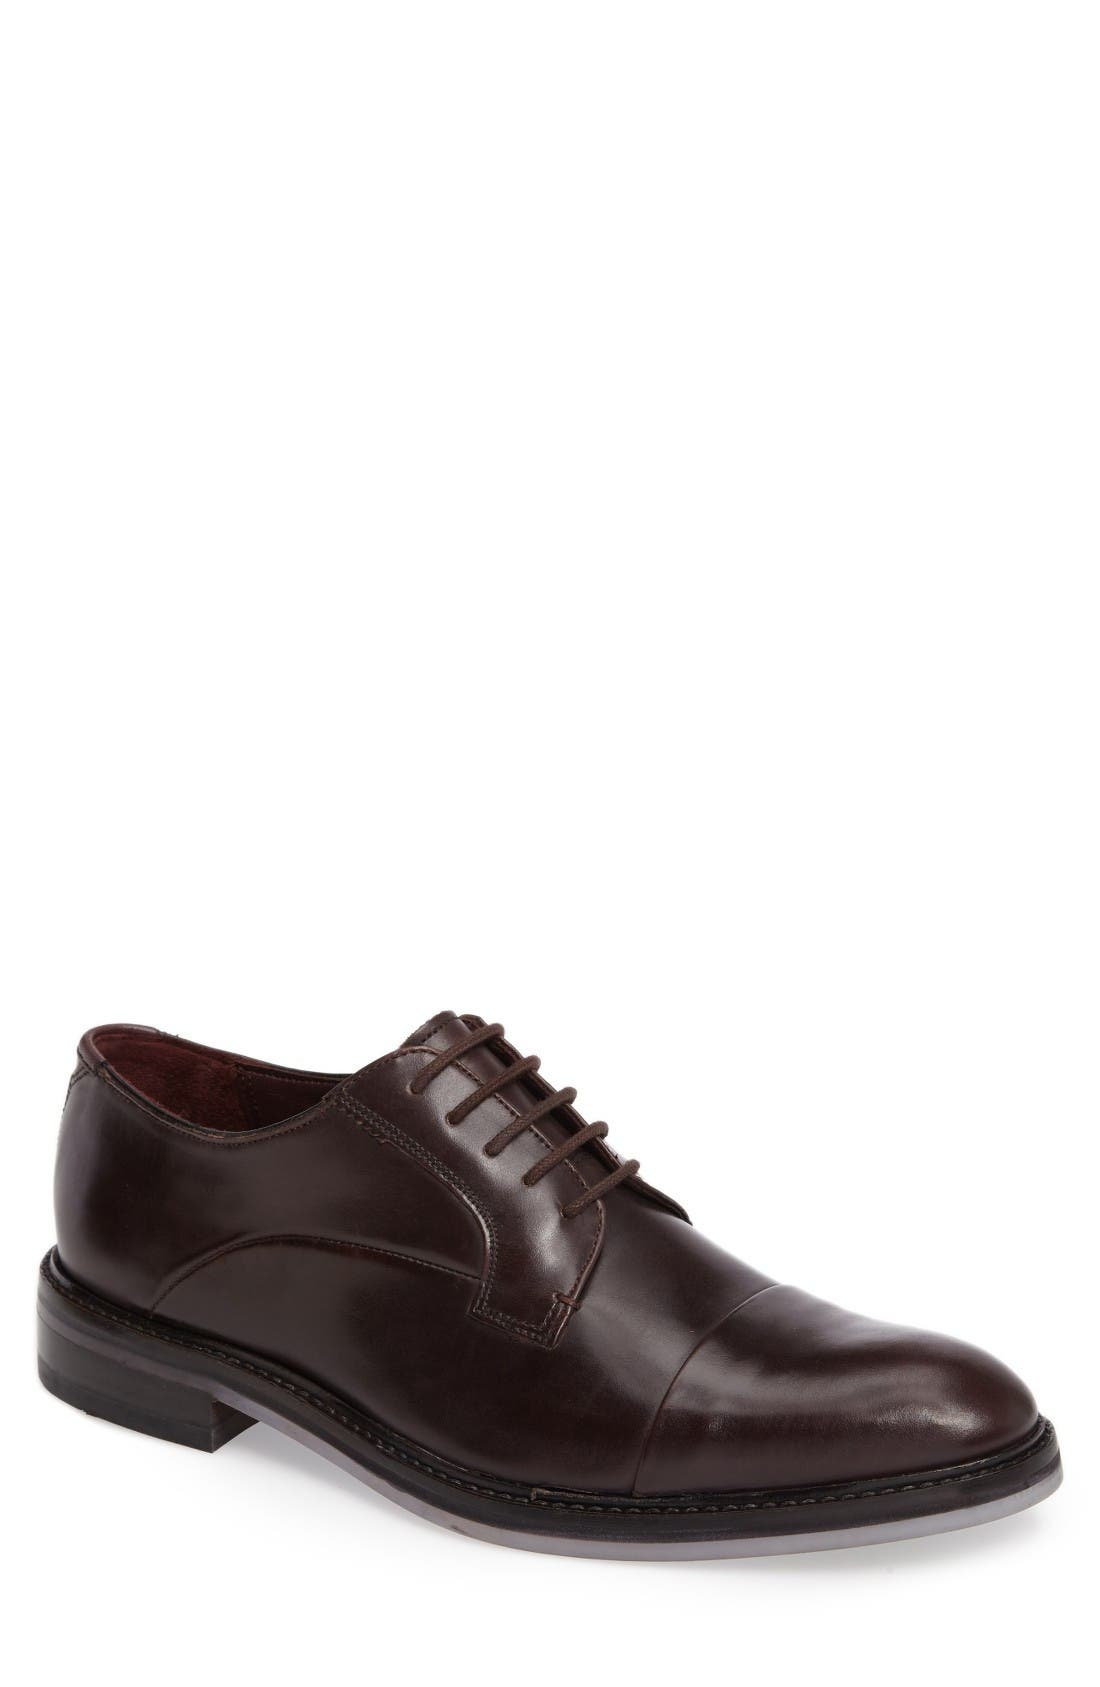 TED BAKER LONDON Aokii Cap Toe Derby